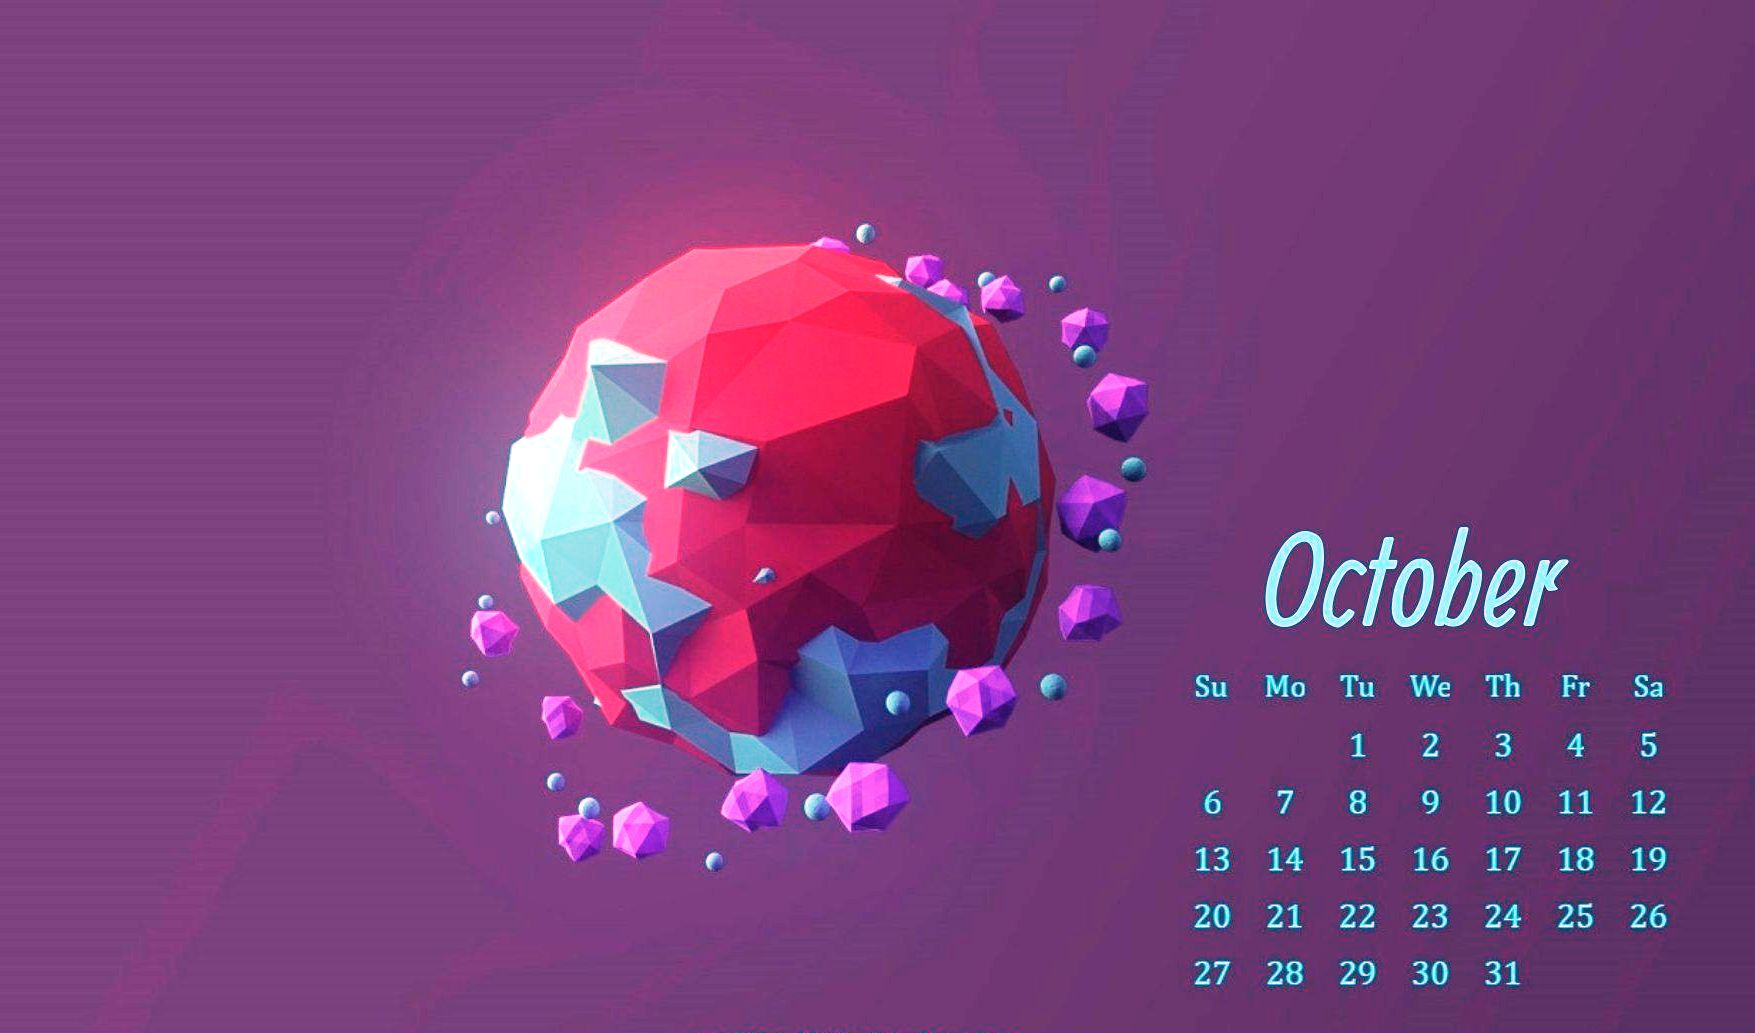 Printable October 2019 Calendar Wallpaper